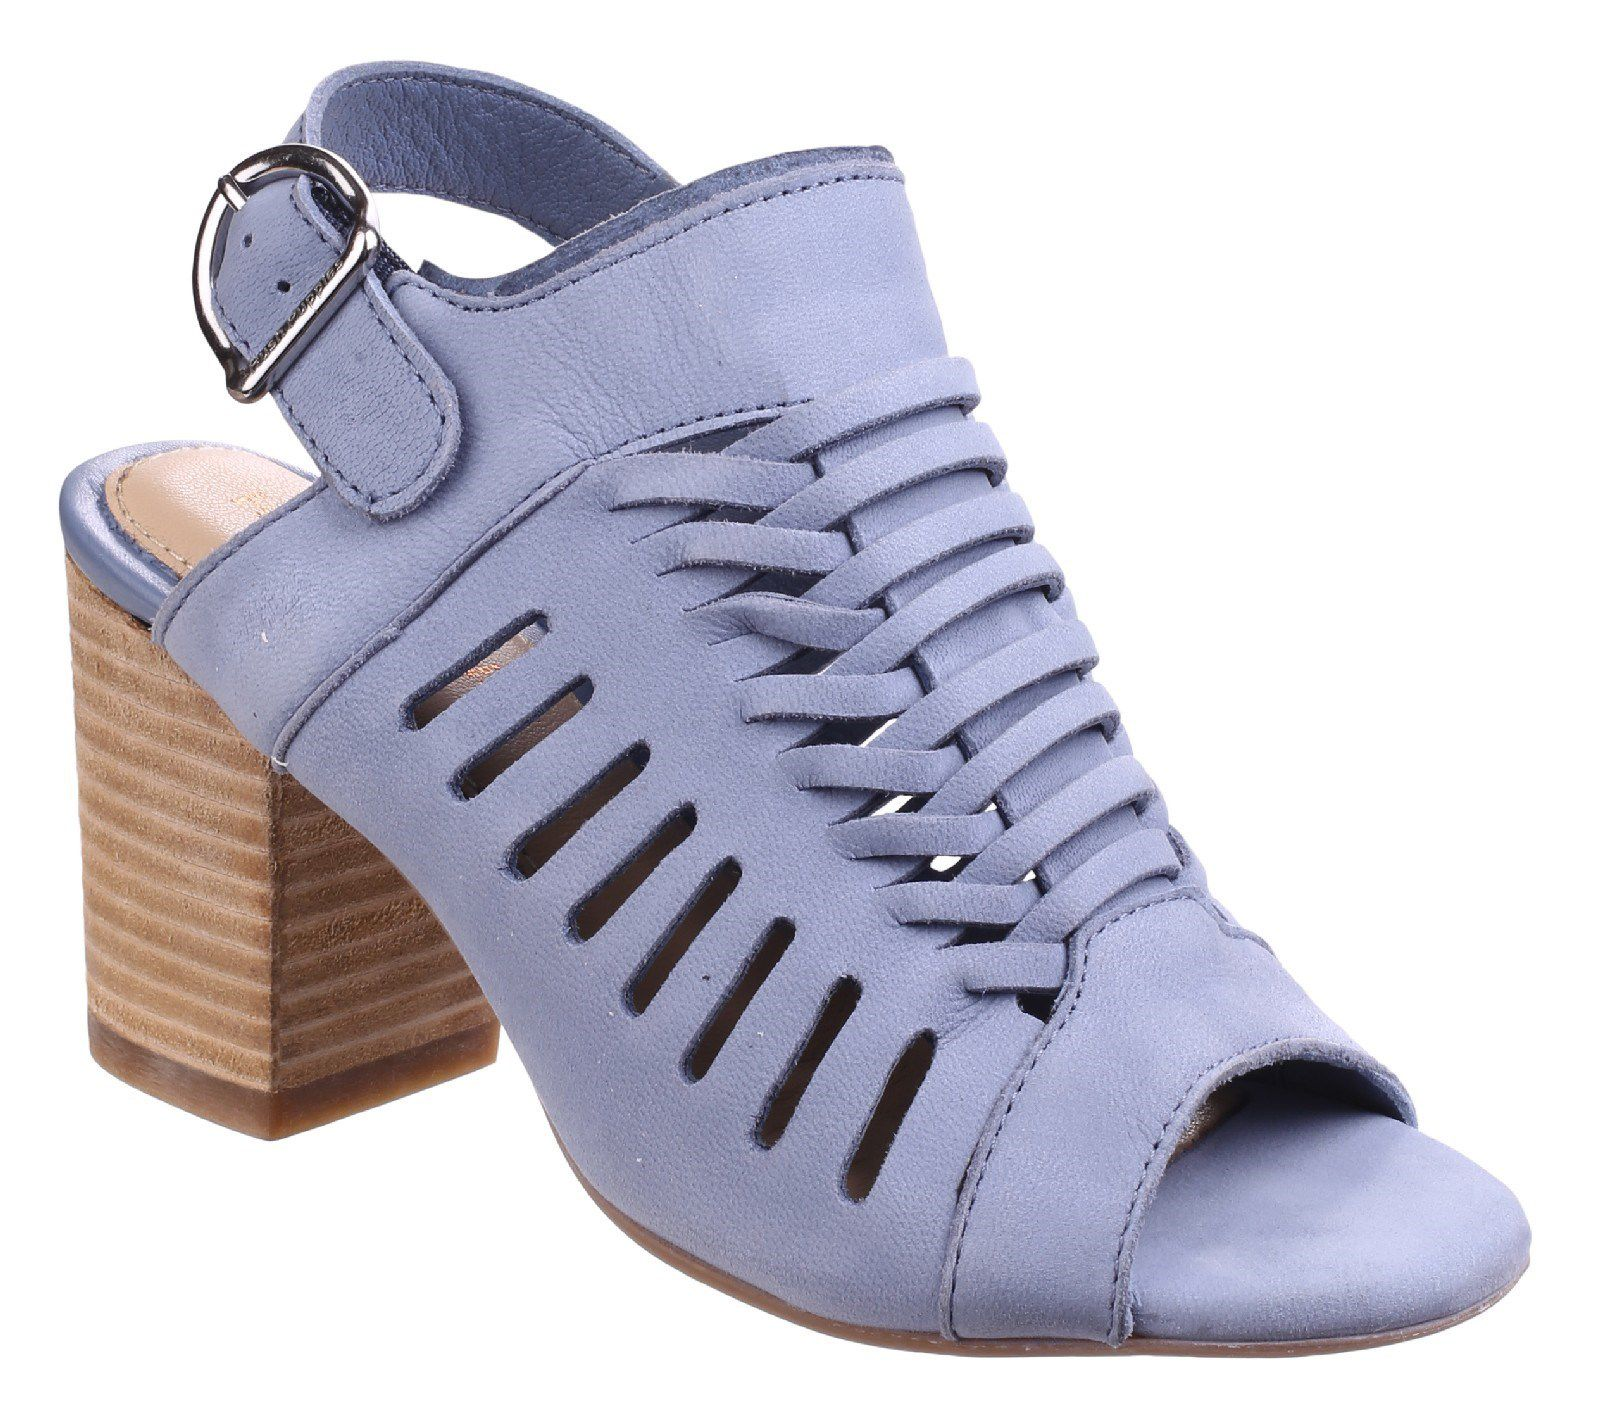 Hush Puppies Sidra malia heeled sandals Blue